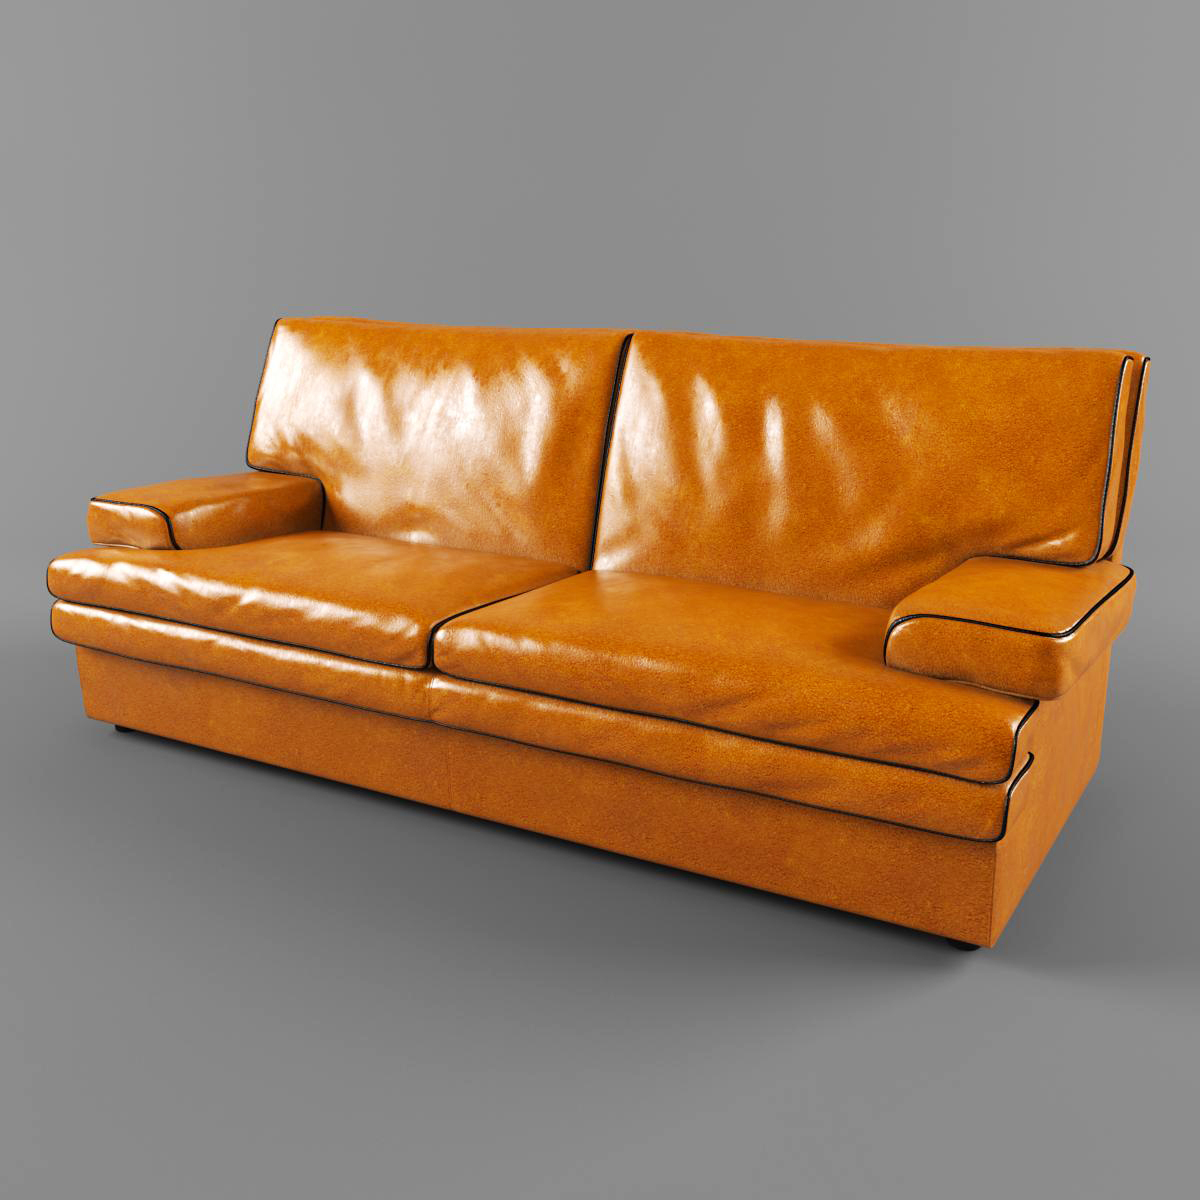 Marvelous Buffalo Leather Sofa Inzonedesignstudio Interior Chair Design Inzonedesignstudiocom